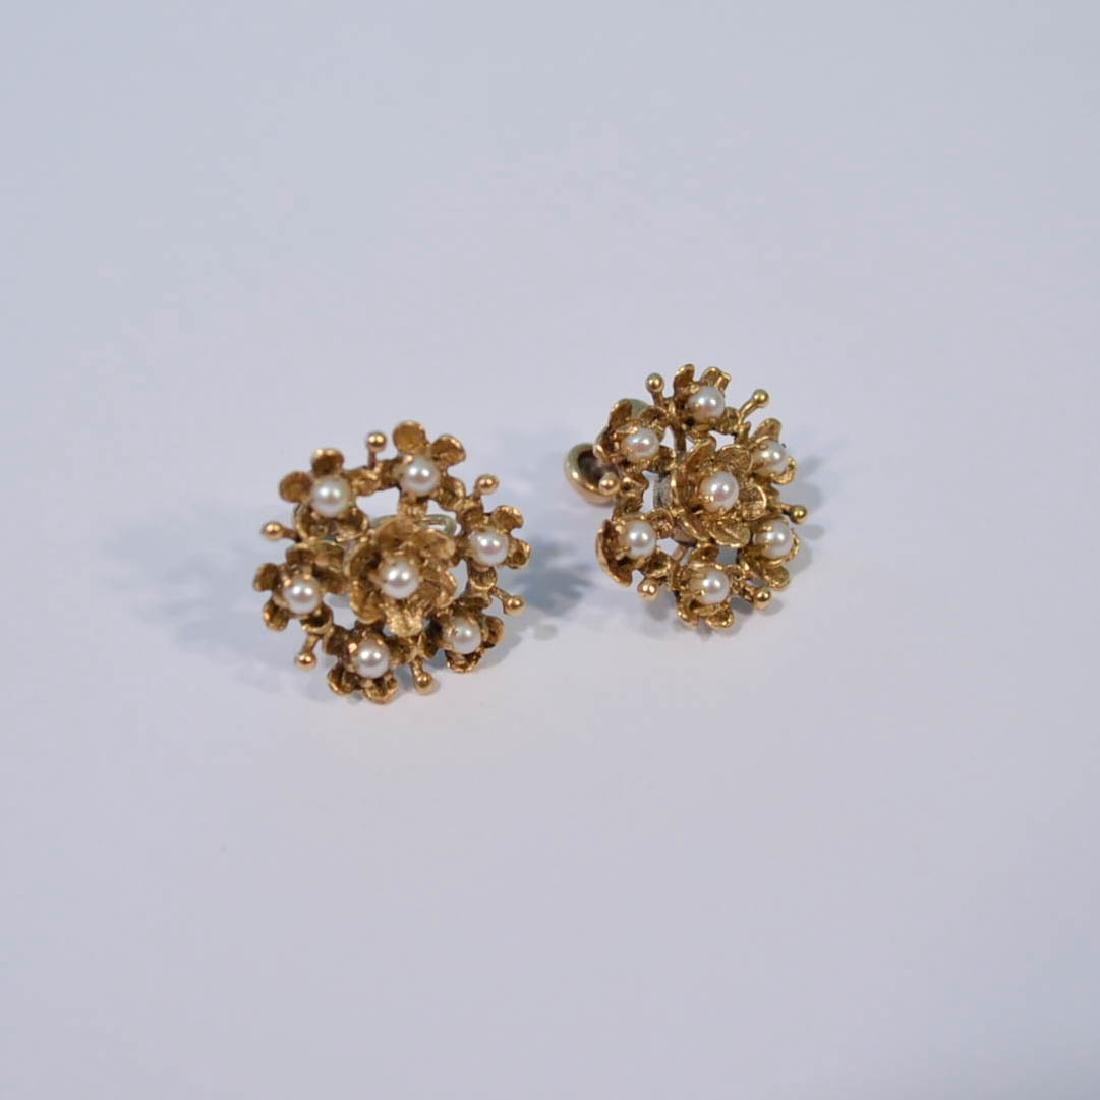 14k Gold & Pearl Earrings with Matching Ring - 2